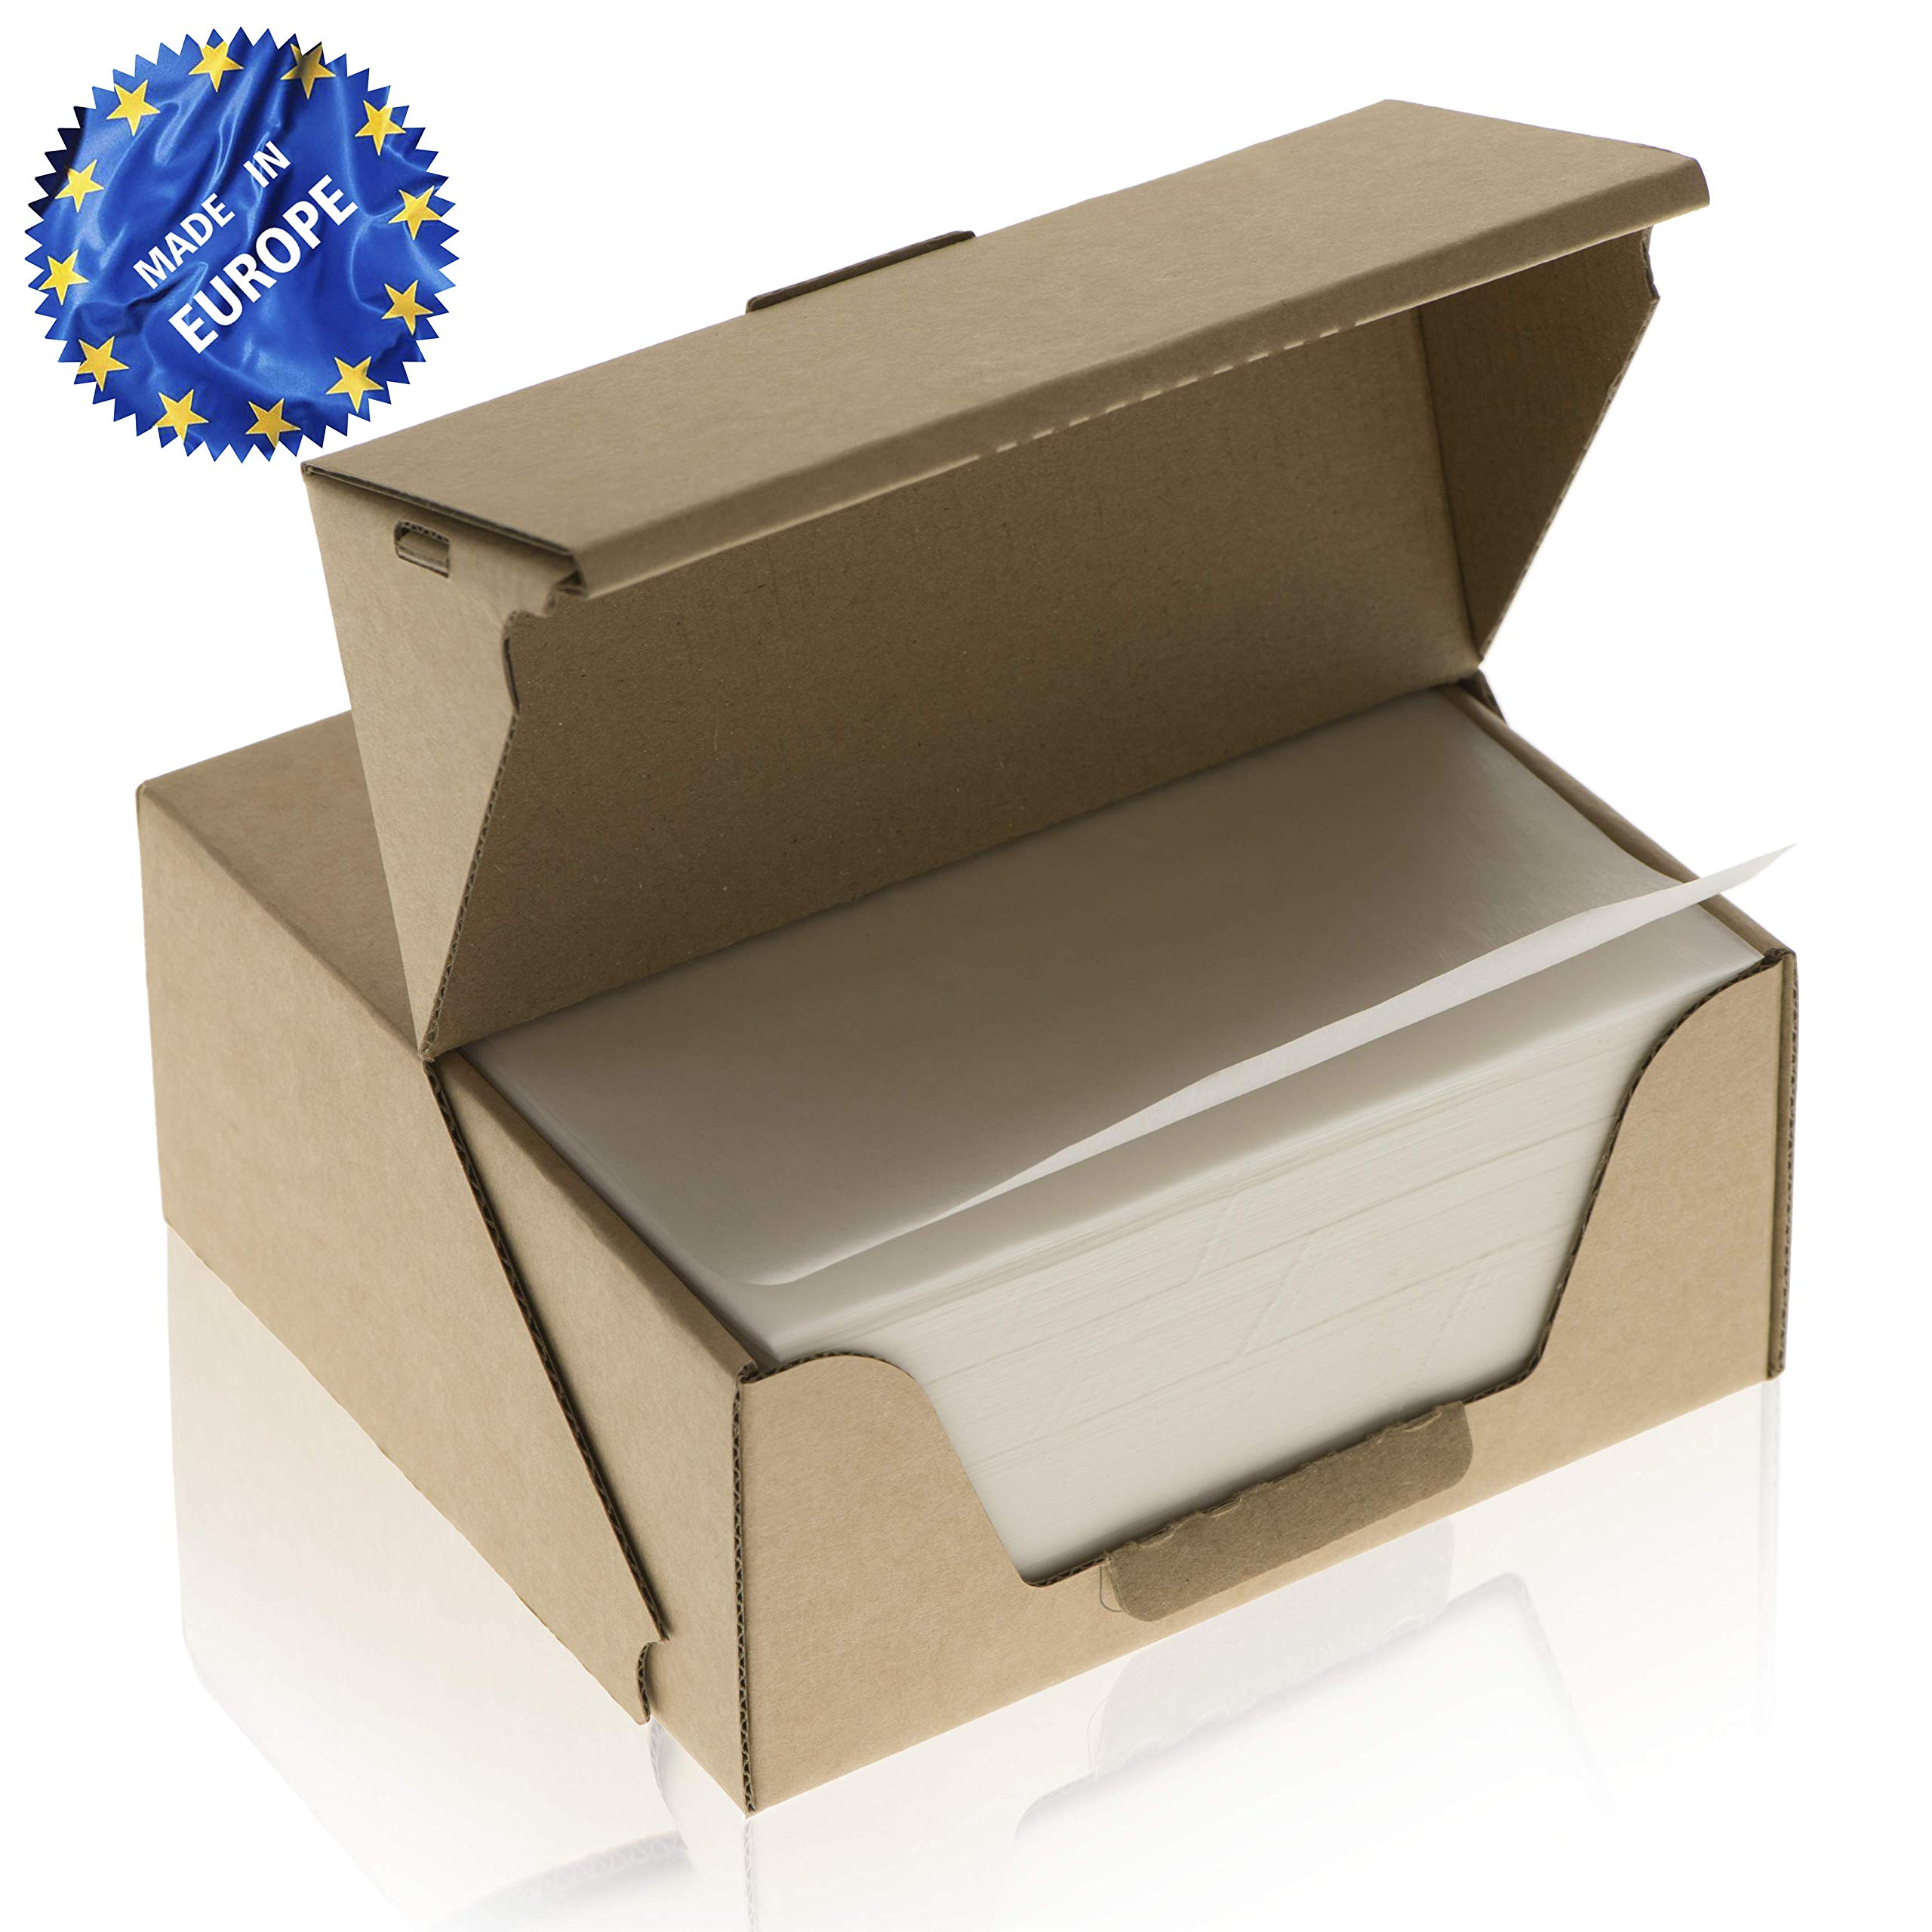 ZeZaZu Parchment Paper Squares 5.5 x 5.5 inches (1000 sheets) - MADE IN EUROPE - for Baking, Hamburger, Diamond Painting Craft | Dual-Sided Coating, Non-stick, Siliconized, Convenient Dispenser Box by ZEZAZU (Image #1)